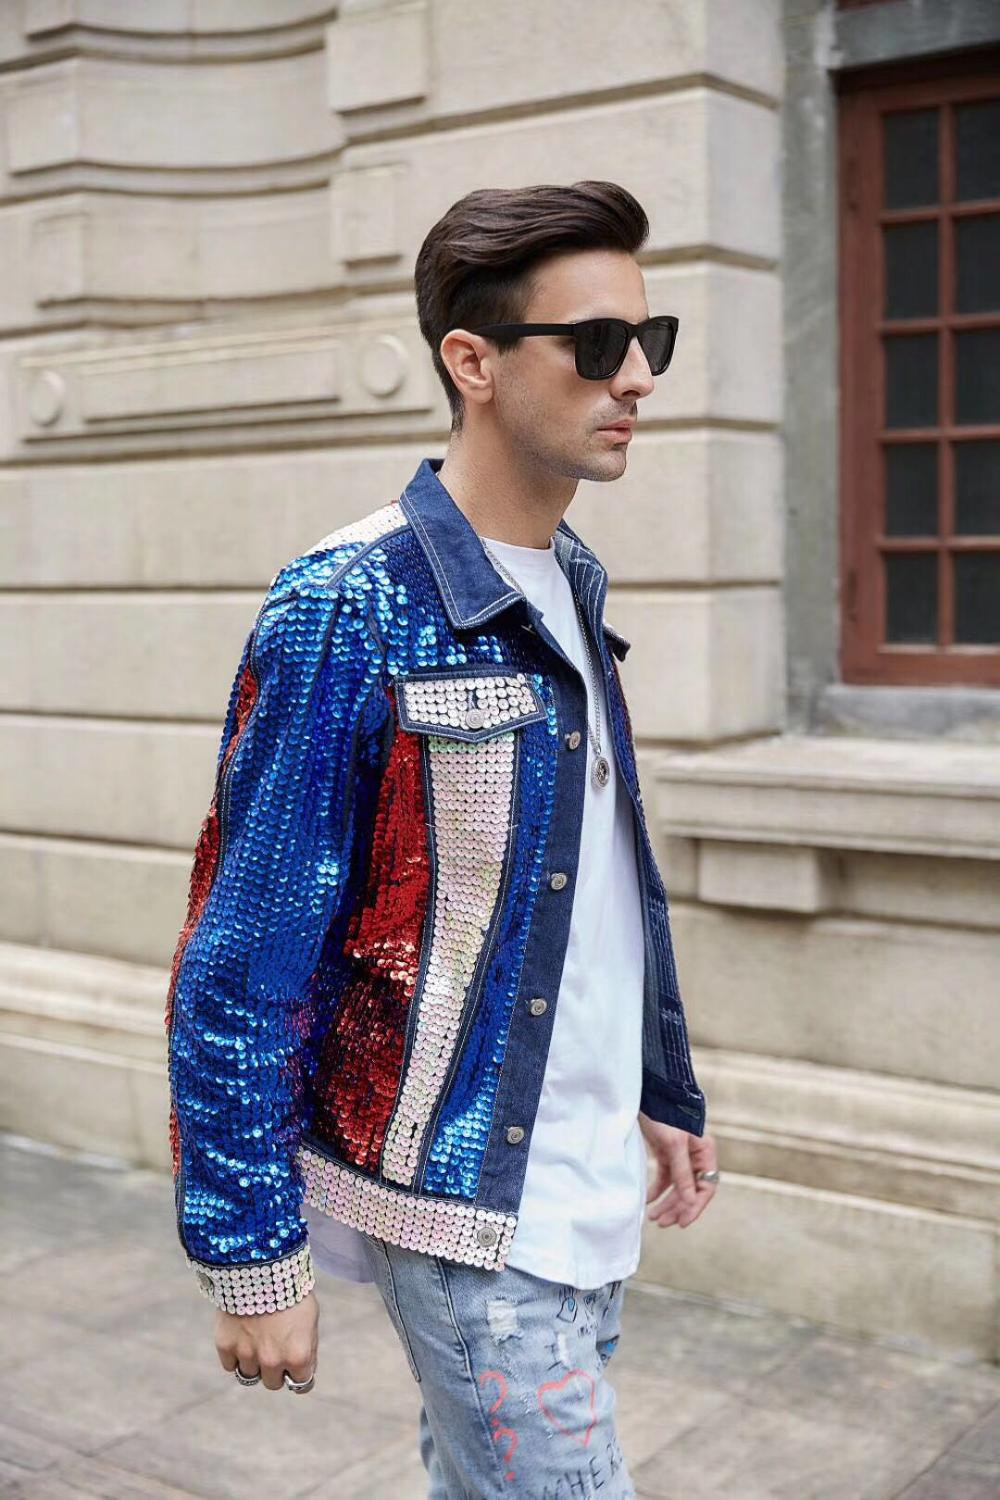 100%real Men U.S Style Full Sequined Beading Jean Jacket Hip Top/short Tuxedo Jacket/stage Performance/ASIA SIZE